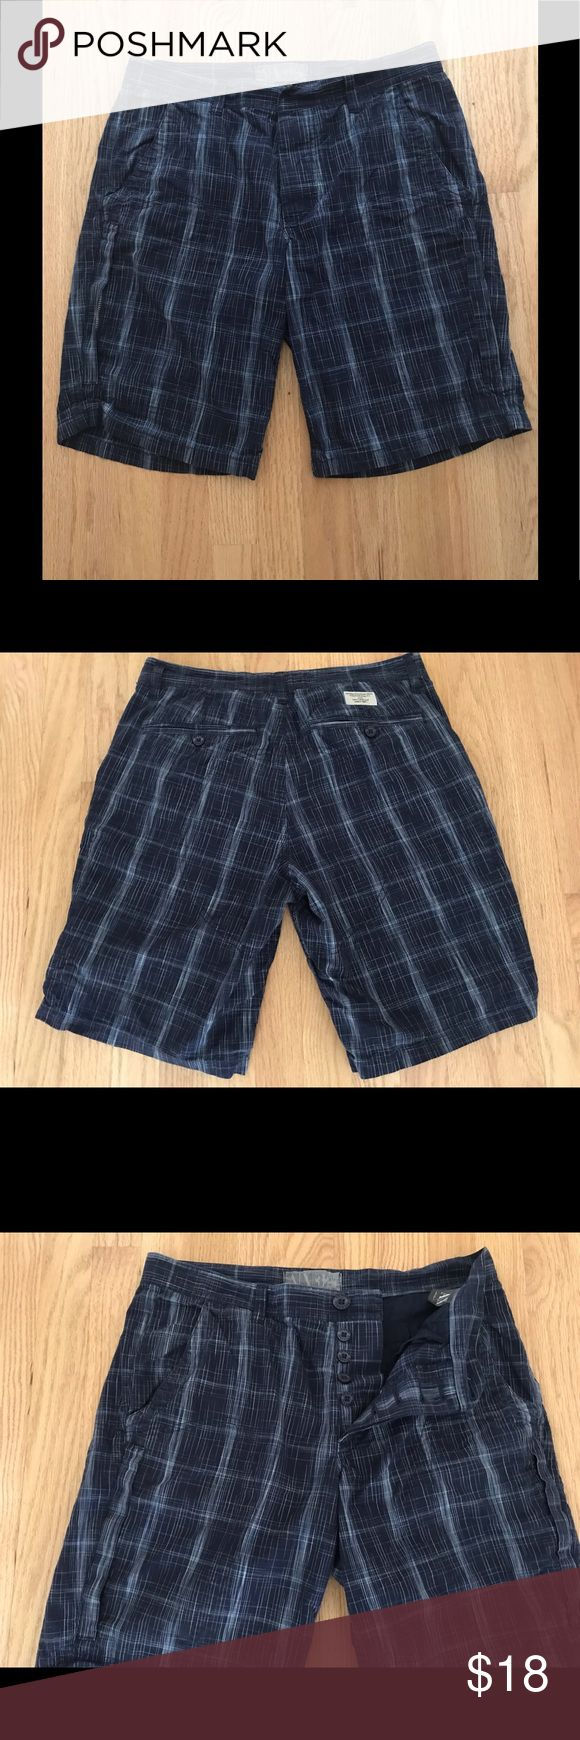 "A//X Armani Exchange Men's Blue Cargo Shorts Sz.32 Armani Exchange Dark Blue Striped And Checked Cargo Shorts Size 32"". Six Pockets Including Two With Zippers. Button Down Fly. Two Extra Buttons Included. 19"" Overall Length. 11"" Inseam. 100% Cotton. A/X Armani Exchange Shorts Cargo"